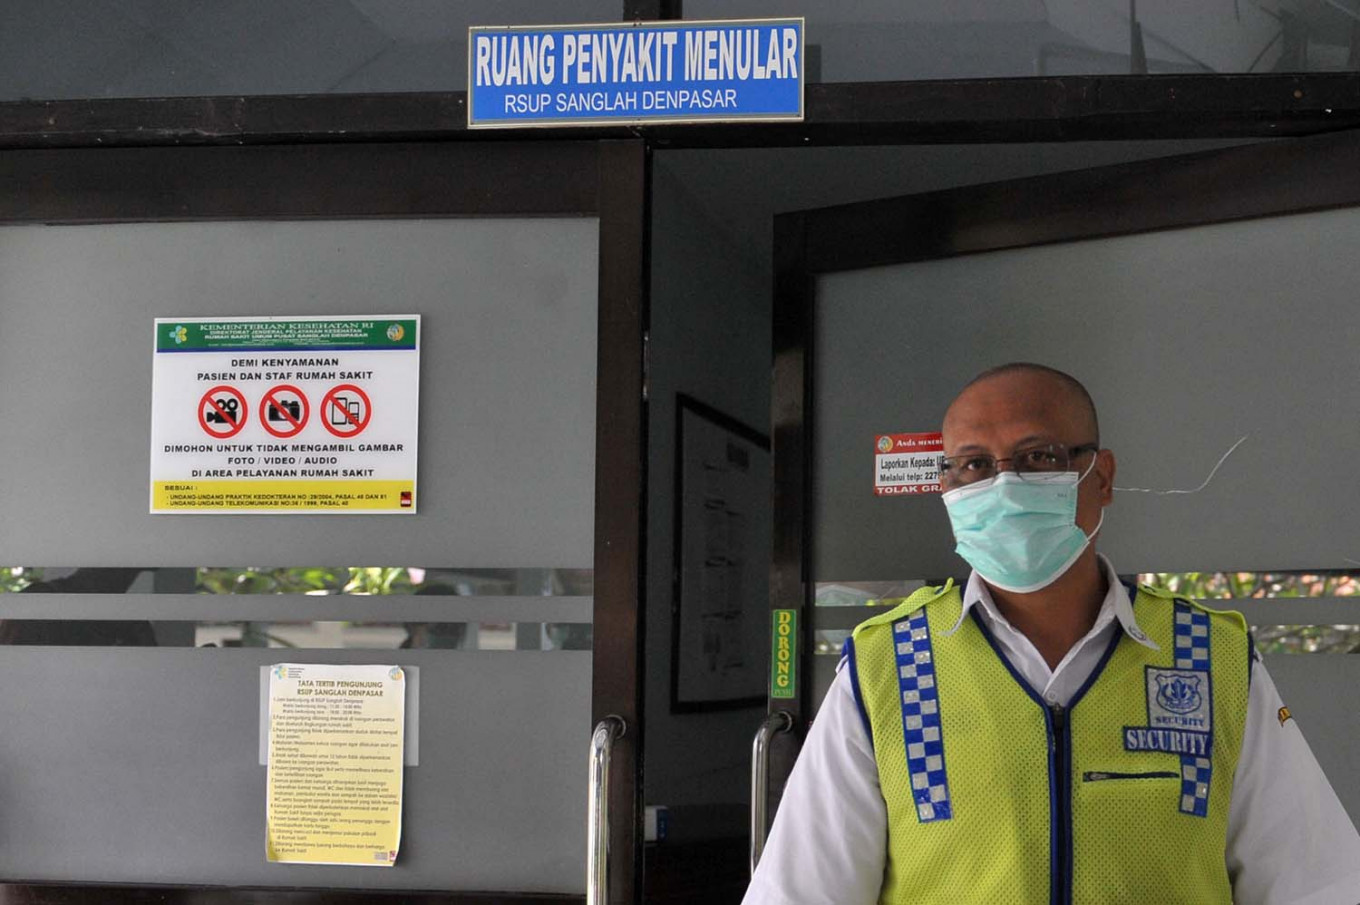 At least five suspected COVID-19 patients have died in Indonesia: What we know so far